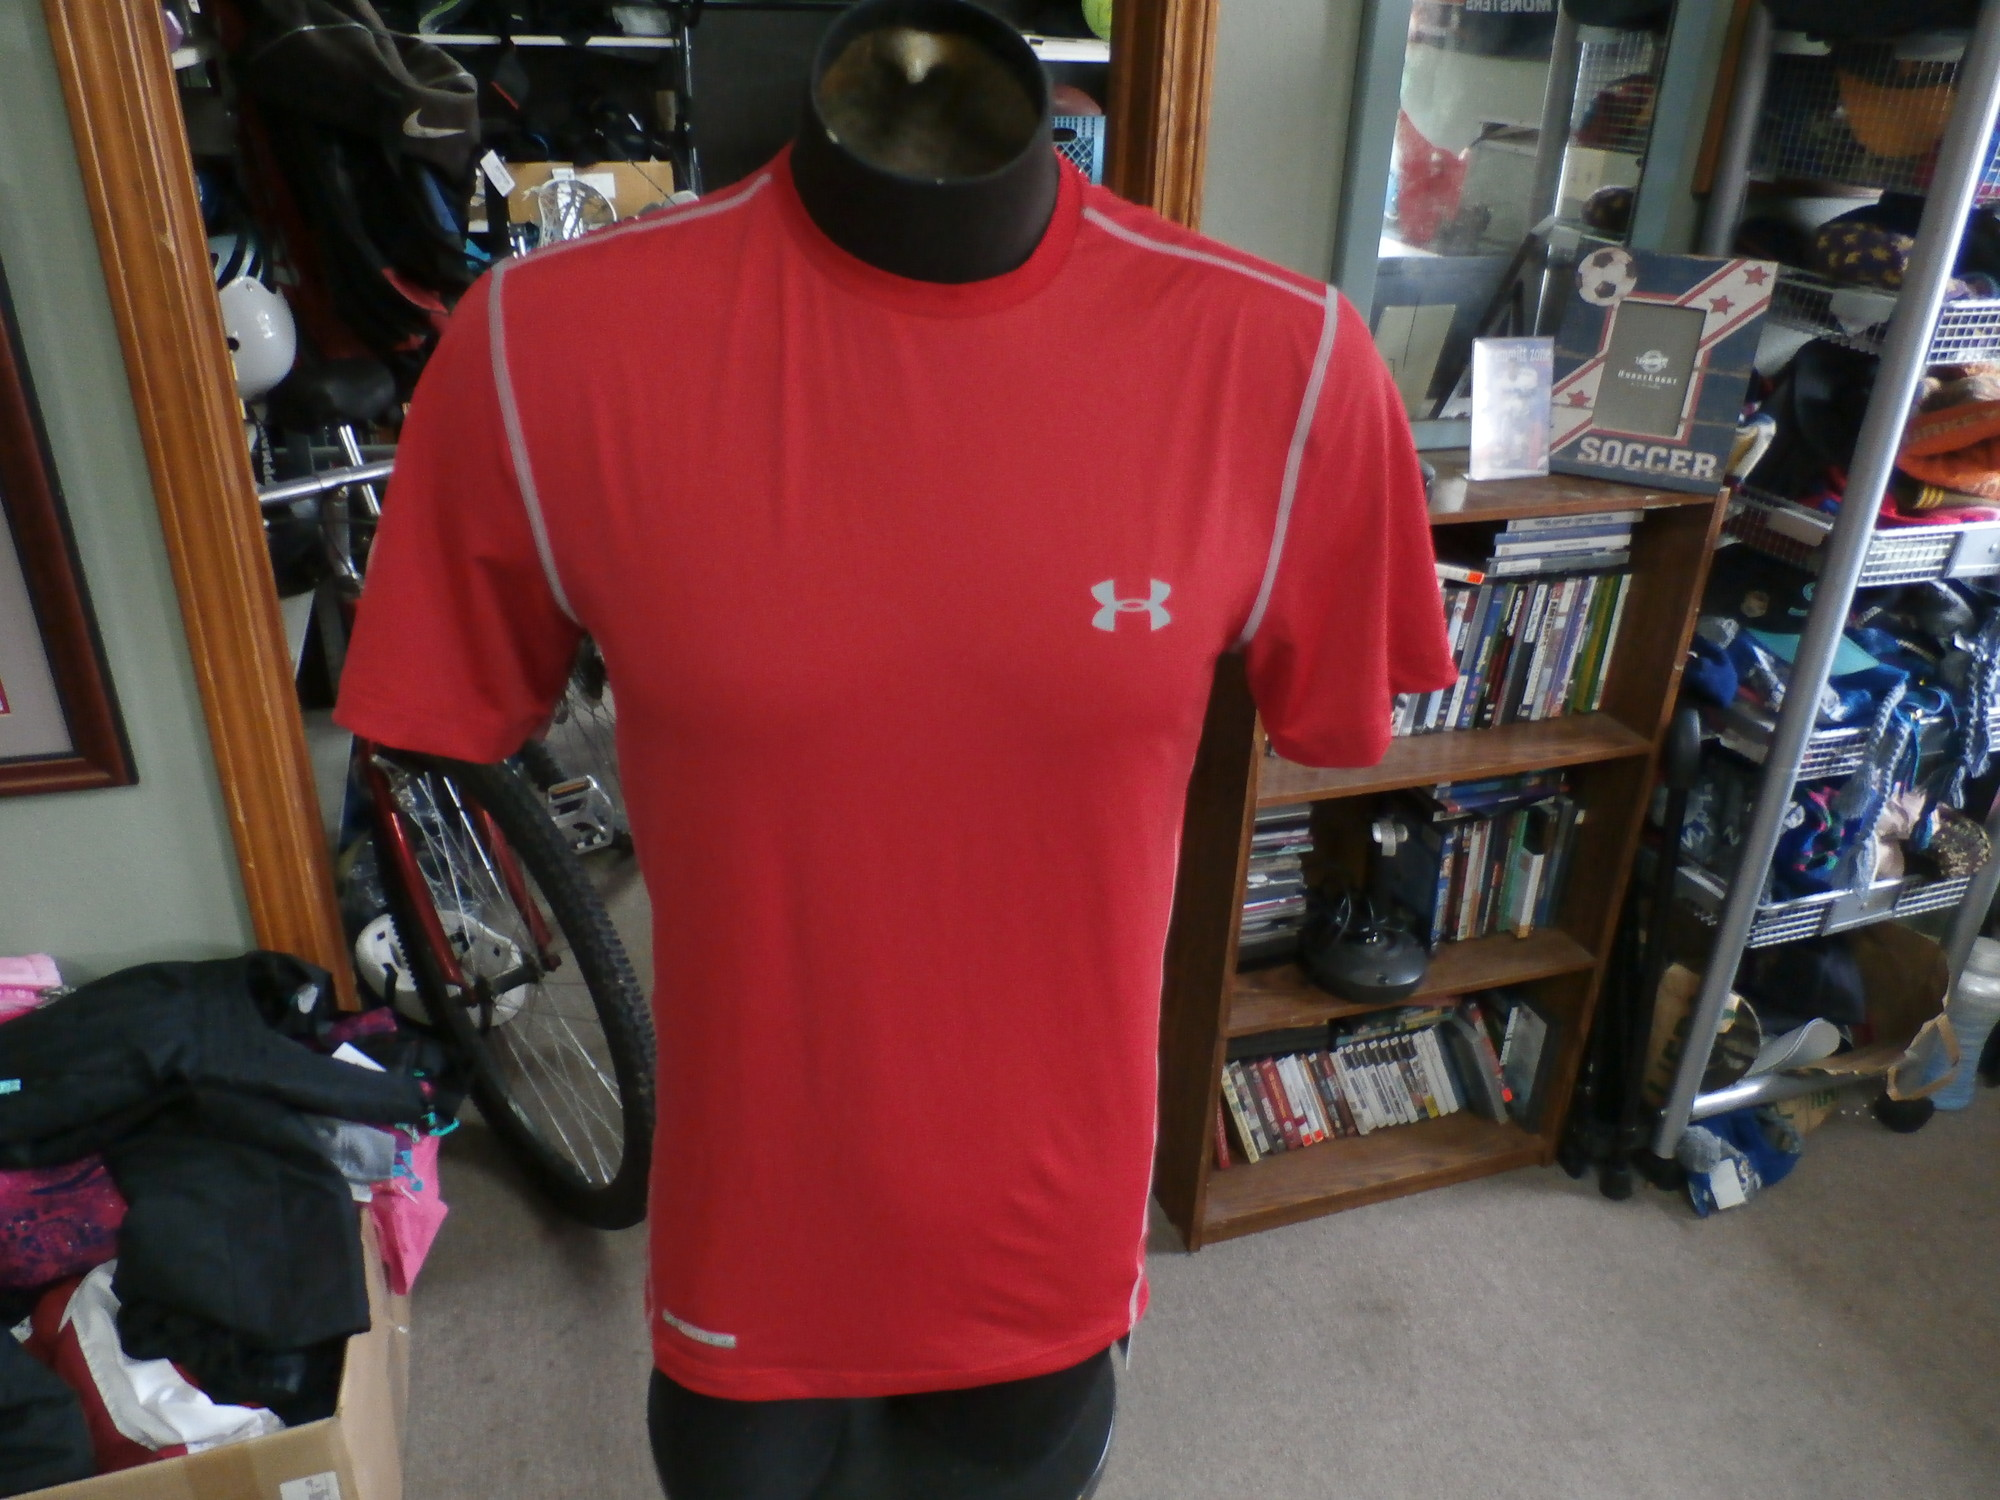 "Under Armour HeatGear red short sleeve shirt size M polyester #34159<br /> Rating: (see below) 2- Great Condition<br /> Team: n/a<br /> Player: n/a<br /> Brand: Under Armour<br /> Size: Men's Medium- (Measured Flat: Across chest 19""; Length 28"")<br /> Measured Flat: underarm to underarm; top of shoulder to bottom hem<br /> Color: red<br /> Style: short sleeve; screen printed<br /> Material: 90% polyester 10% spandex<br /> Condition: 2- Great Condition: gently used (see photos)<br /> Item #: 34159<br /> Shipping:<br /> Rating: (see below) 2- Great Condition<br /> Team: n/a<br /> Player: n/a<br /> Brand: Under Armour<br /> Size: Men's Medium- (Measured Flat: Across chest 19""; Length 28"")<br /> Measured Flat: underarm to underarm; top of shoulder to bottom hem<br /> Color: red<br /> Style: short sleeve; screen printed<br /> Material: 90% polyester 10% spandex<br /> Condition: 2- Great Condition: gently used (see photos)<br /> Item #: 34159<br /> Shipping: FREE"